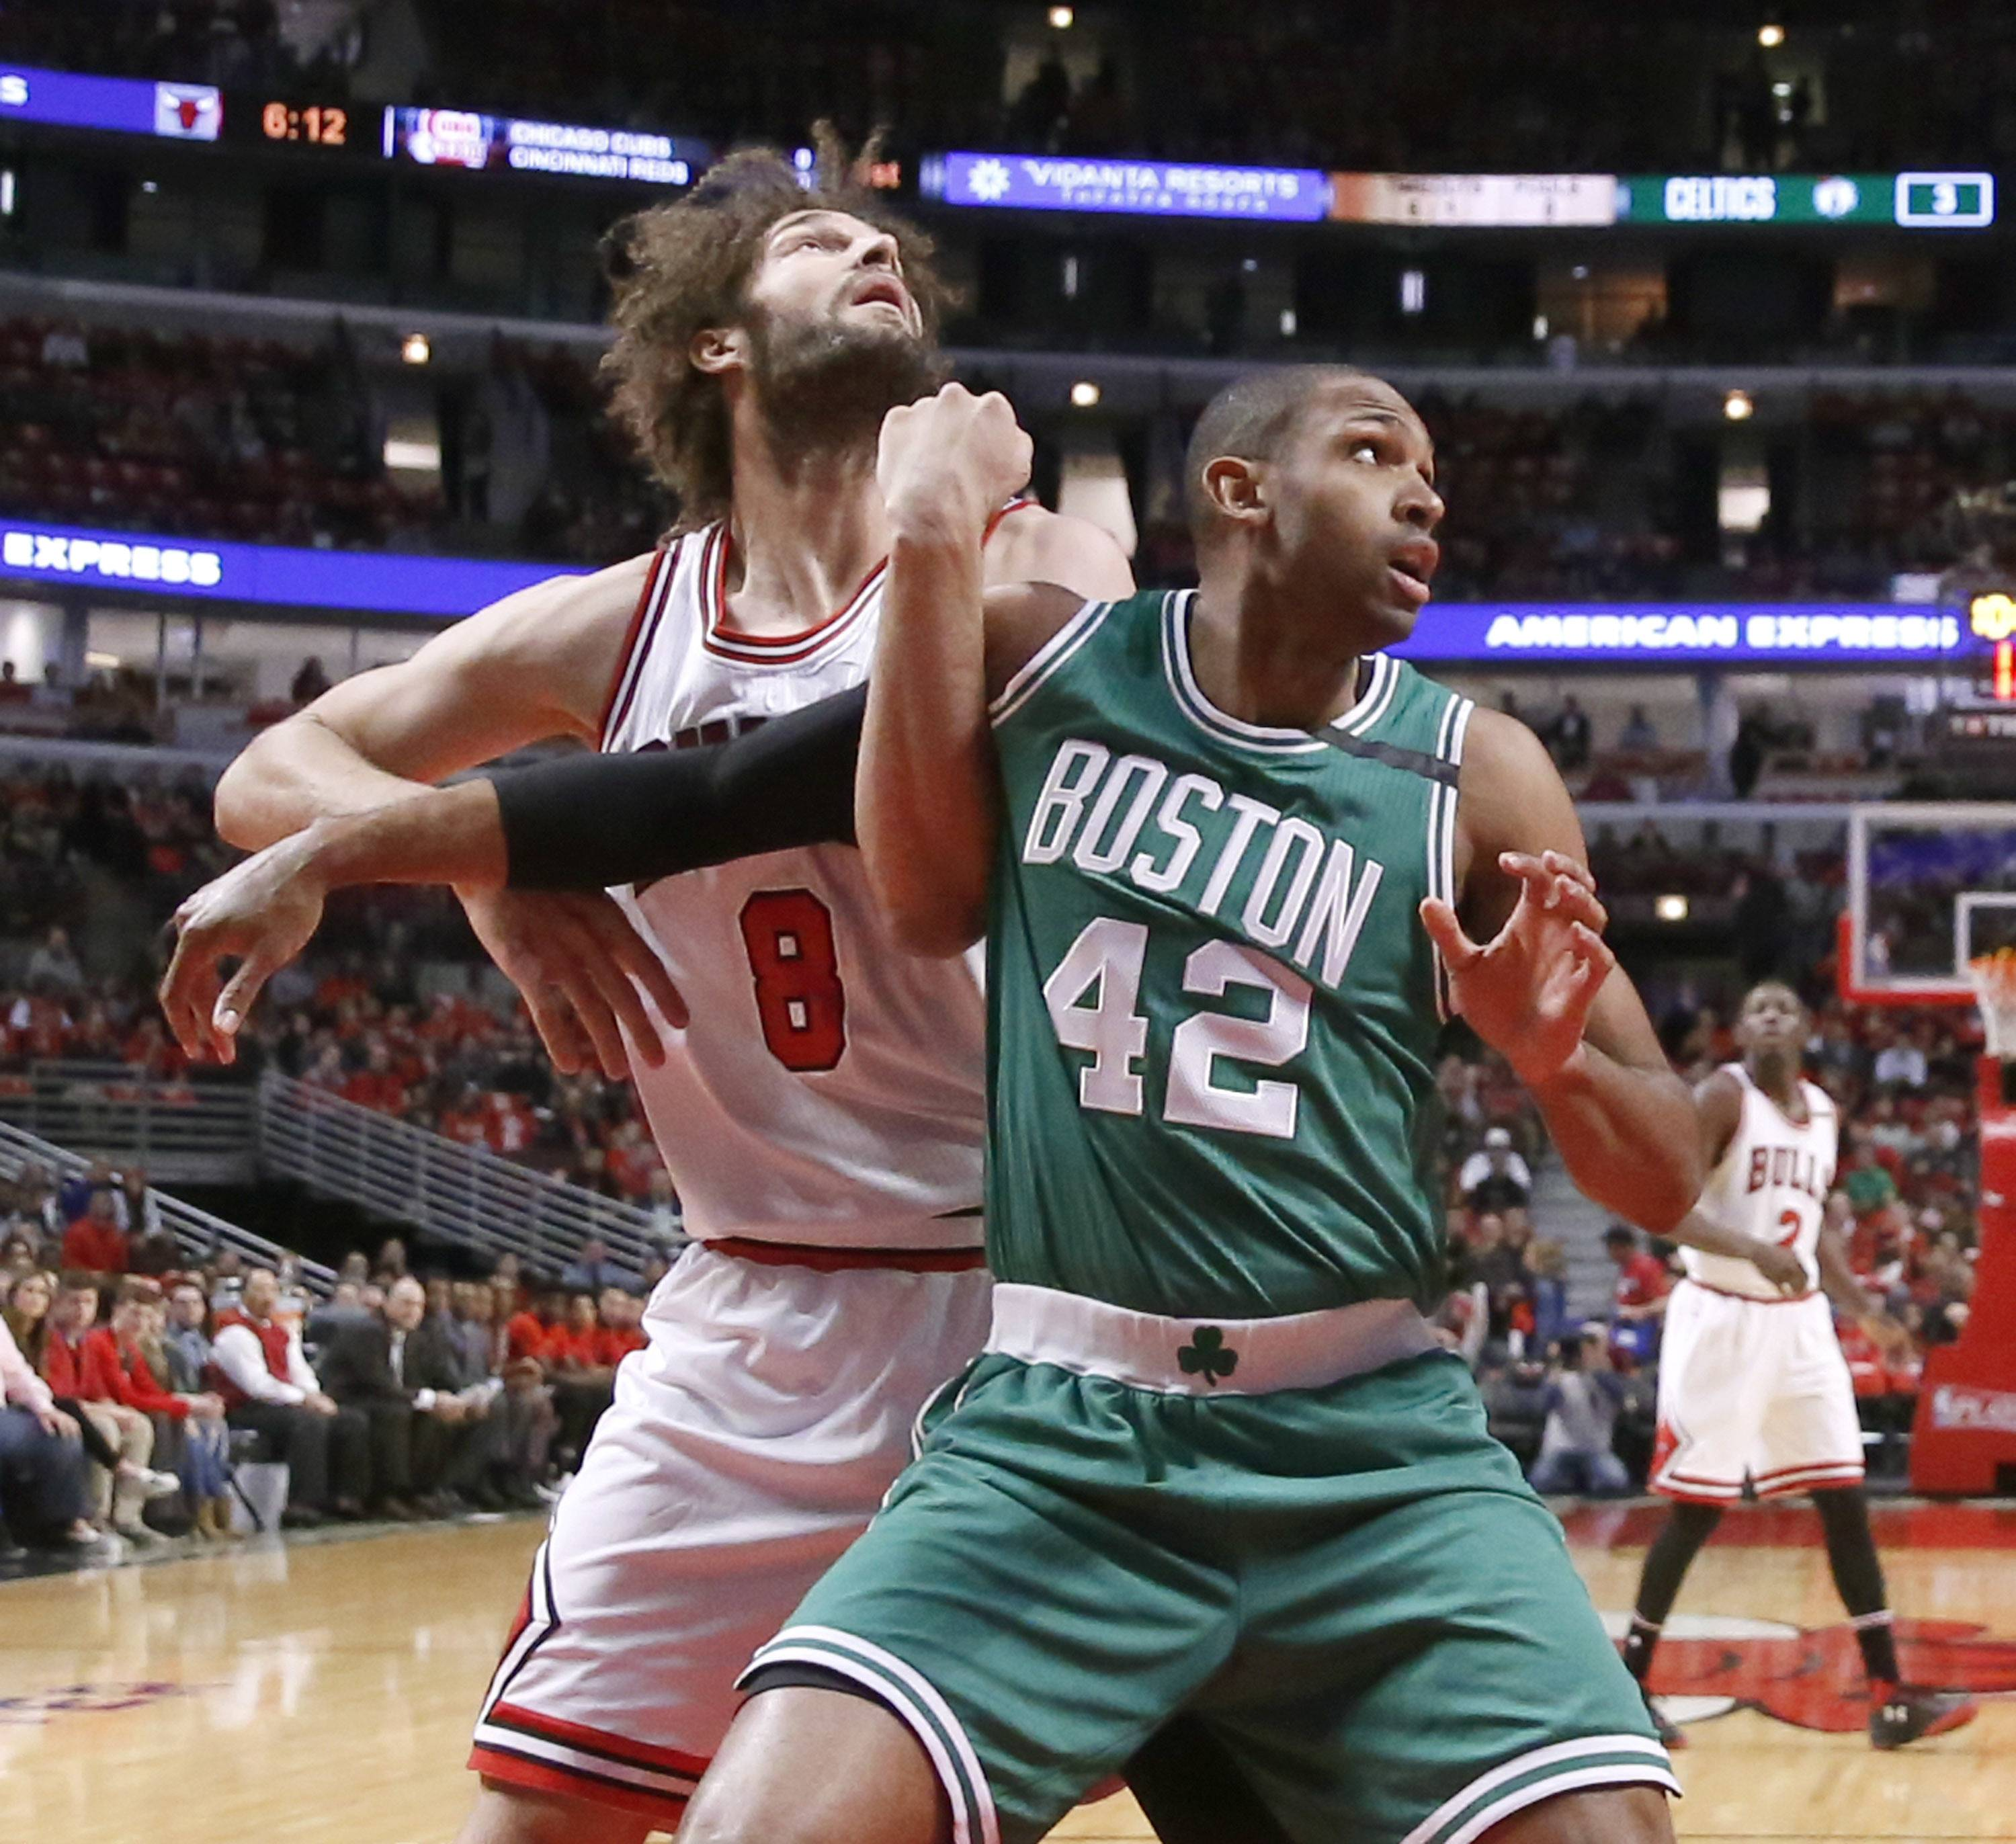 Chicago Bulls' Robin Lopez (8) and Boston Celtics' Al Horford vie for position during the first half of Game 3 of an NBA basketball first-round playoff series in Chicago, Friday, April 21, 2017, in Chicago. (AP Photo/Charles Rex Arbogast)